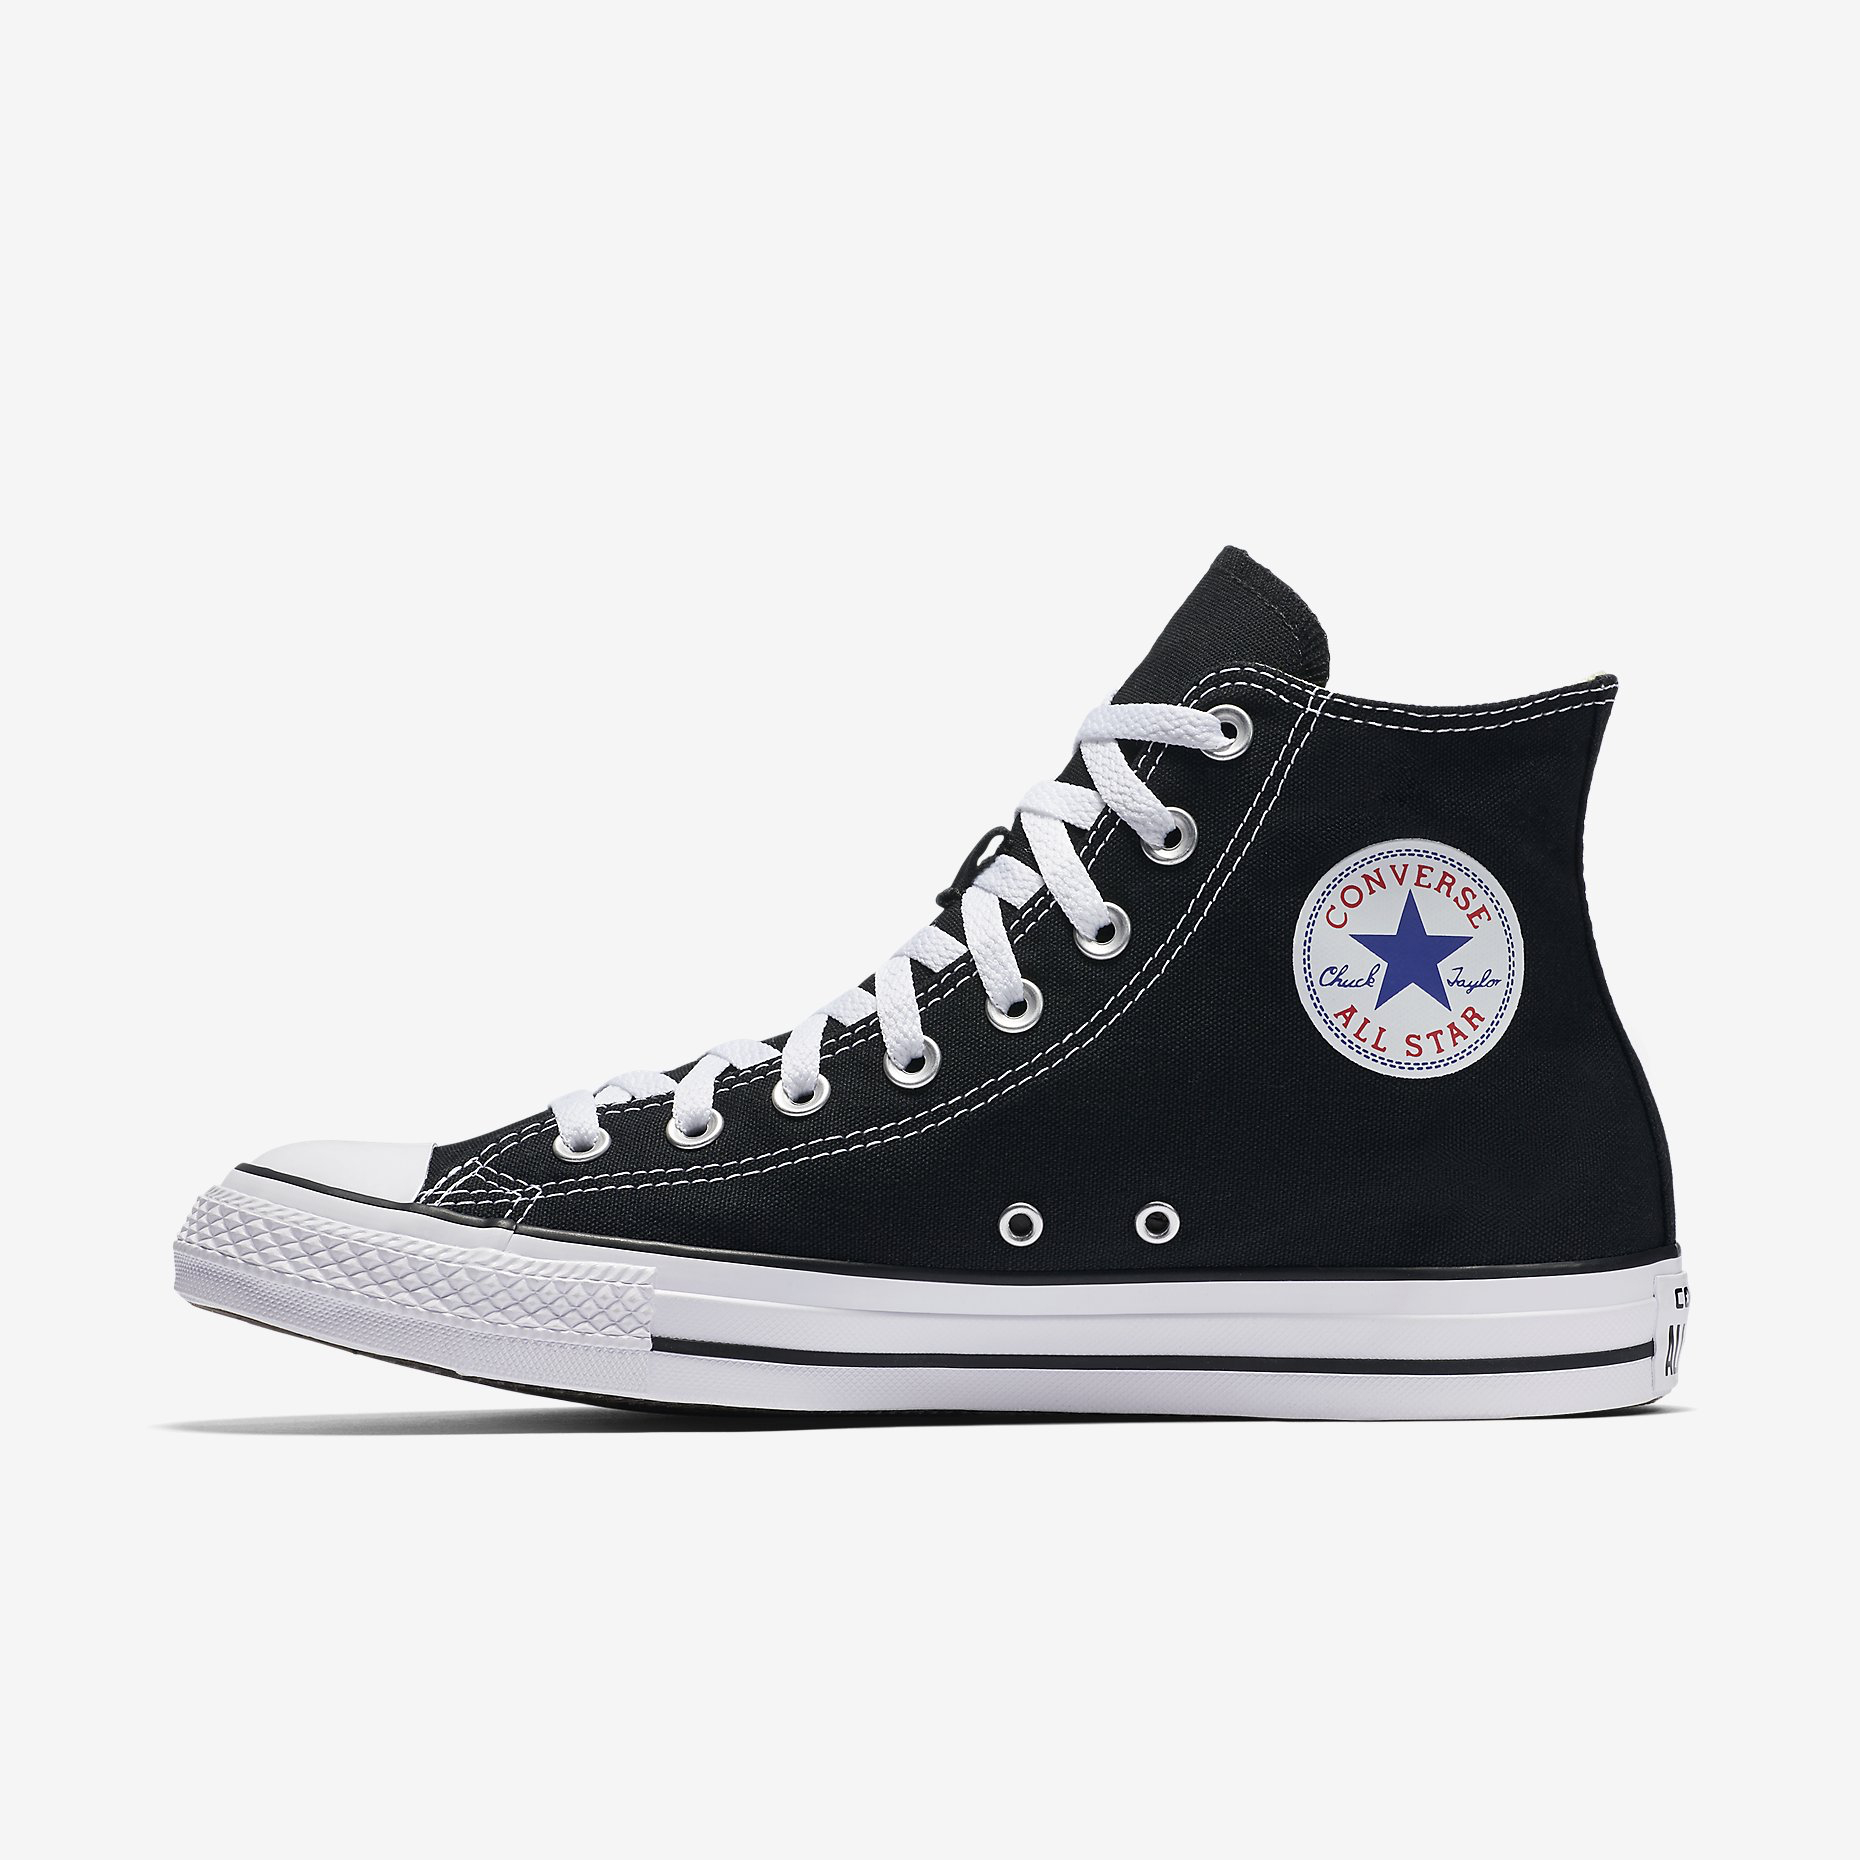 0cec71cbdb7 Converse Chuck Taylor All Star Womens High Top Black in 2019